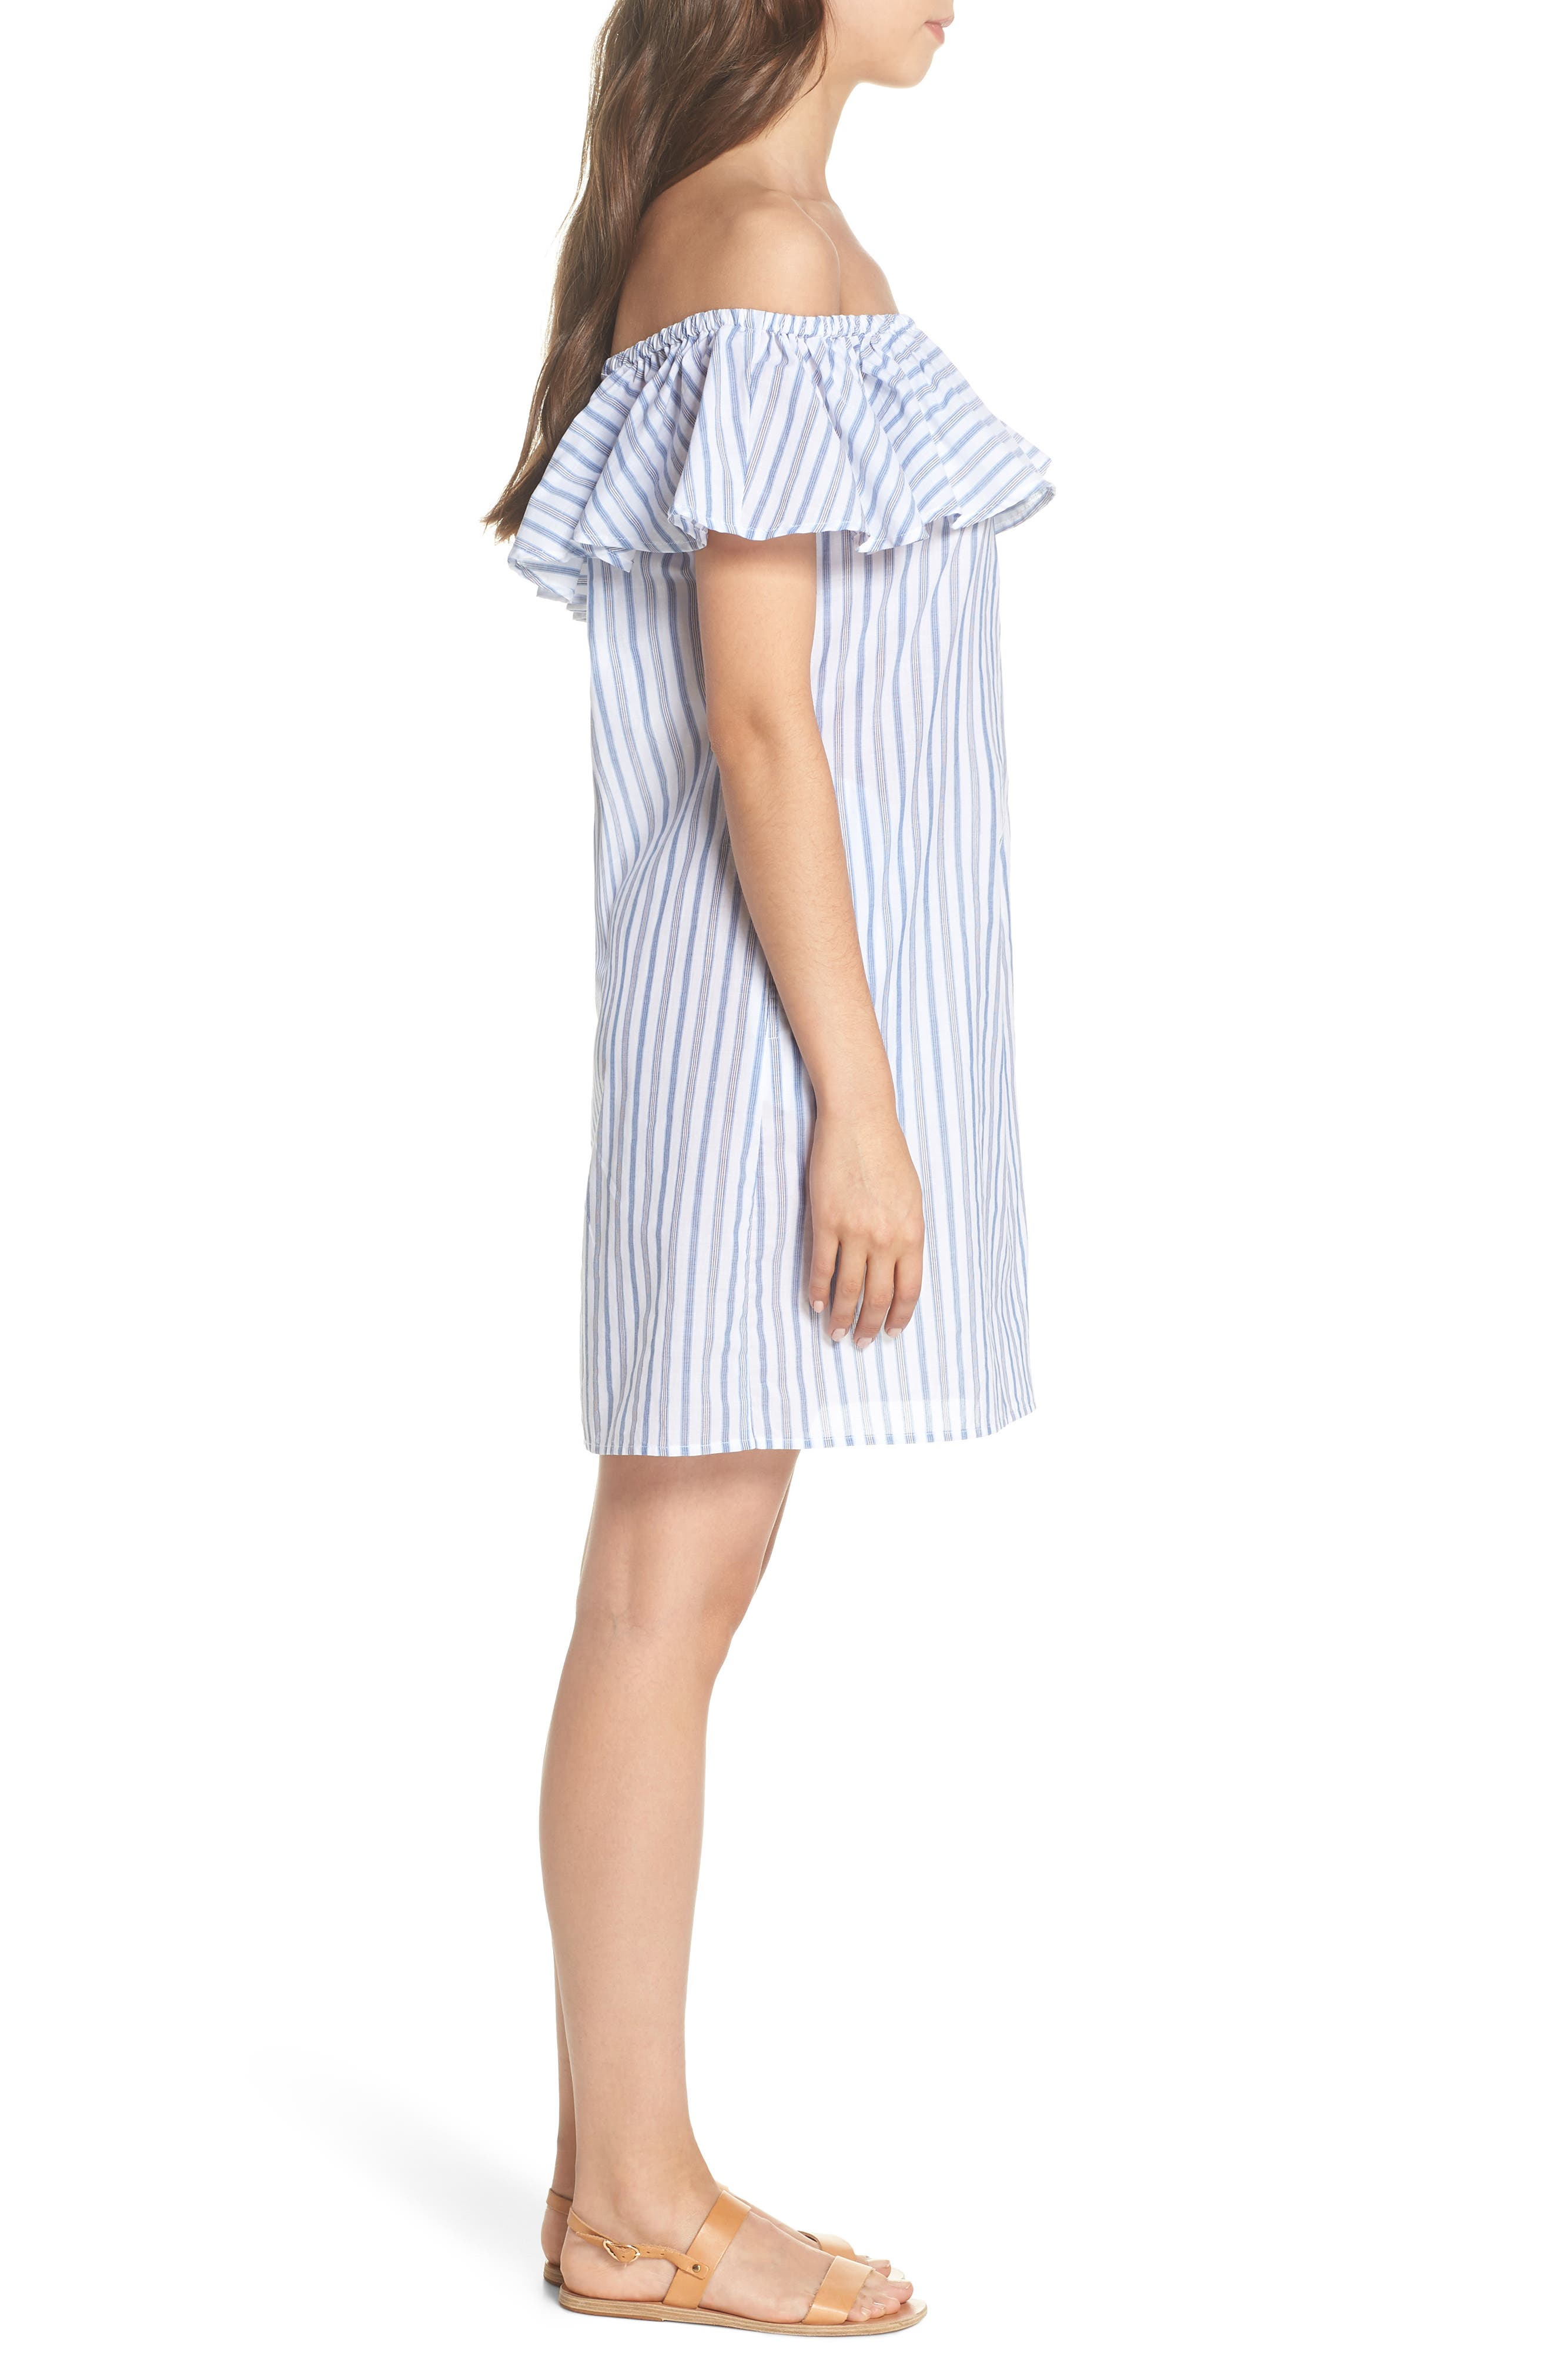 Ticking Stripe Off the Shoulder Cover-Up Dress,                             Alternate thumbnail 3, color,                             White